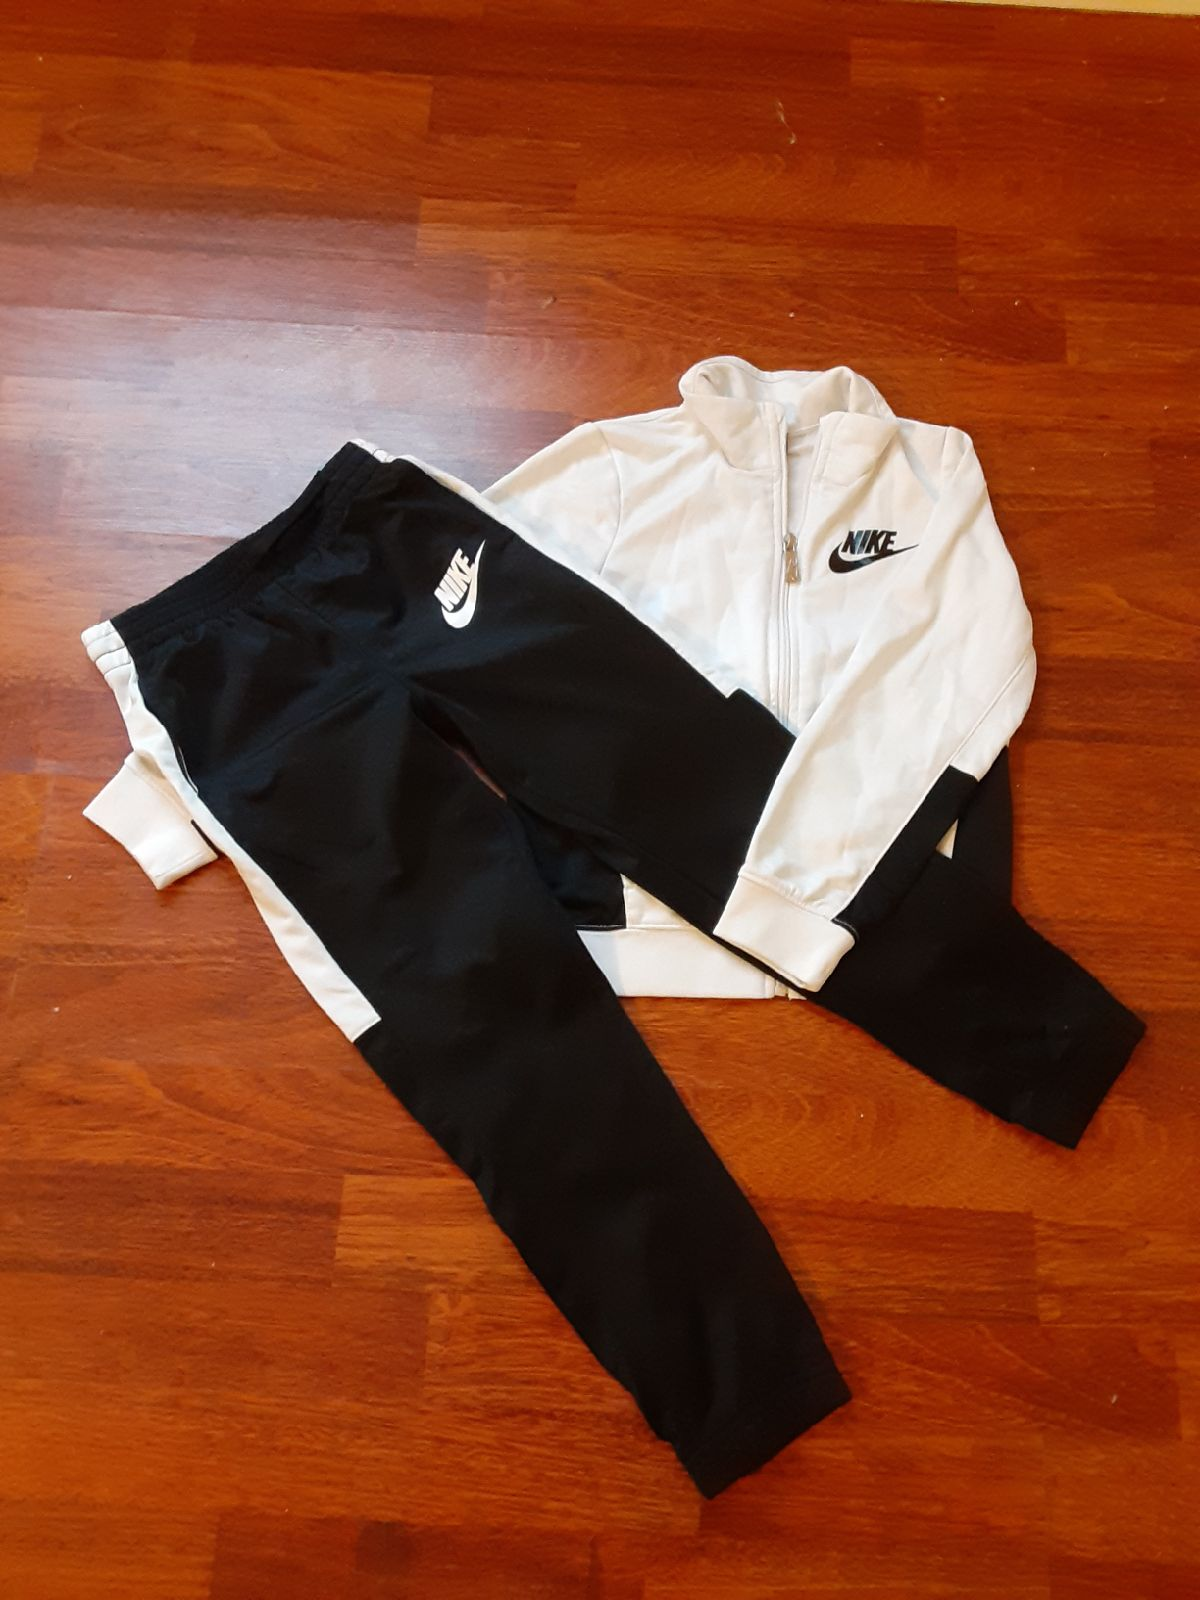 Nike 6-7 Size 7 Track suit black and whi